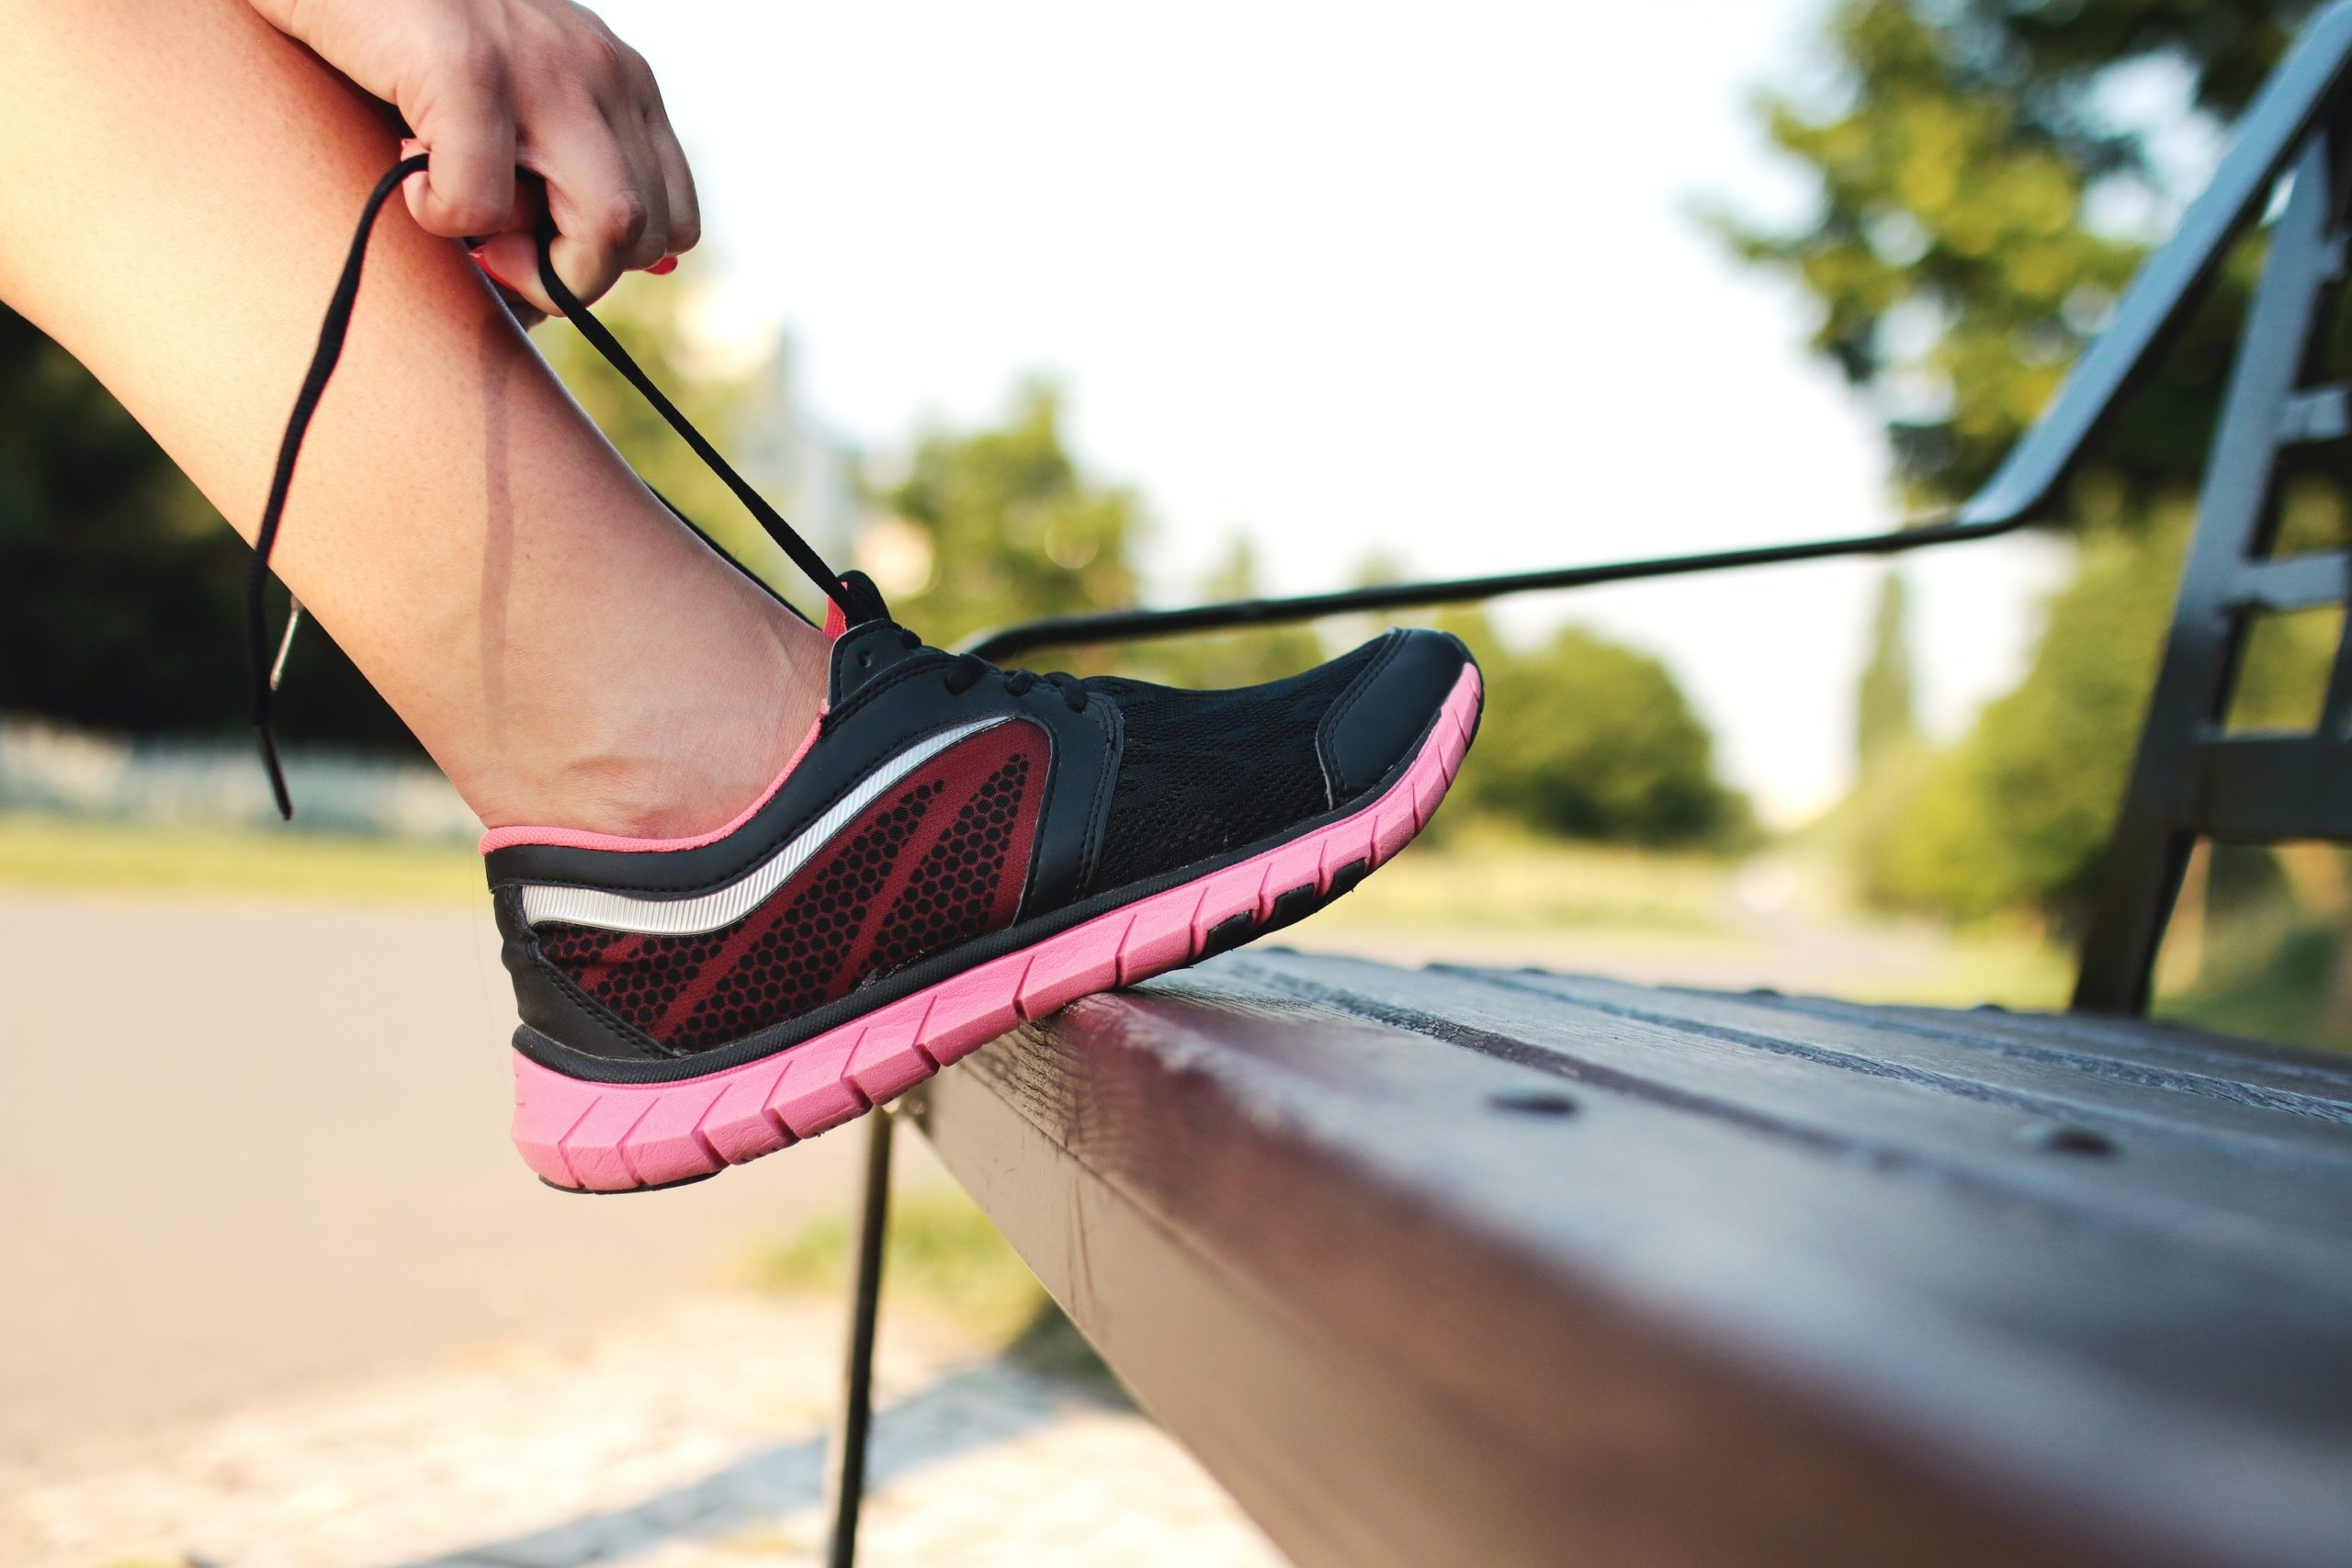 Buying The Right Shoes For Your Daily Exercise Allowance